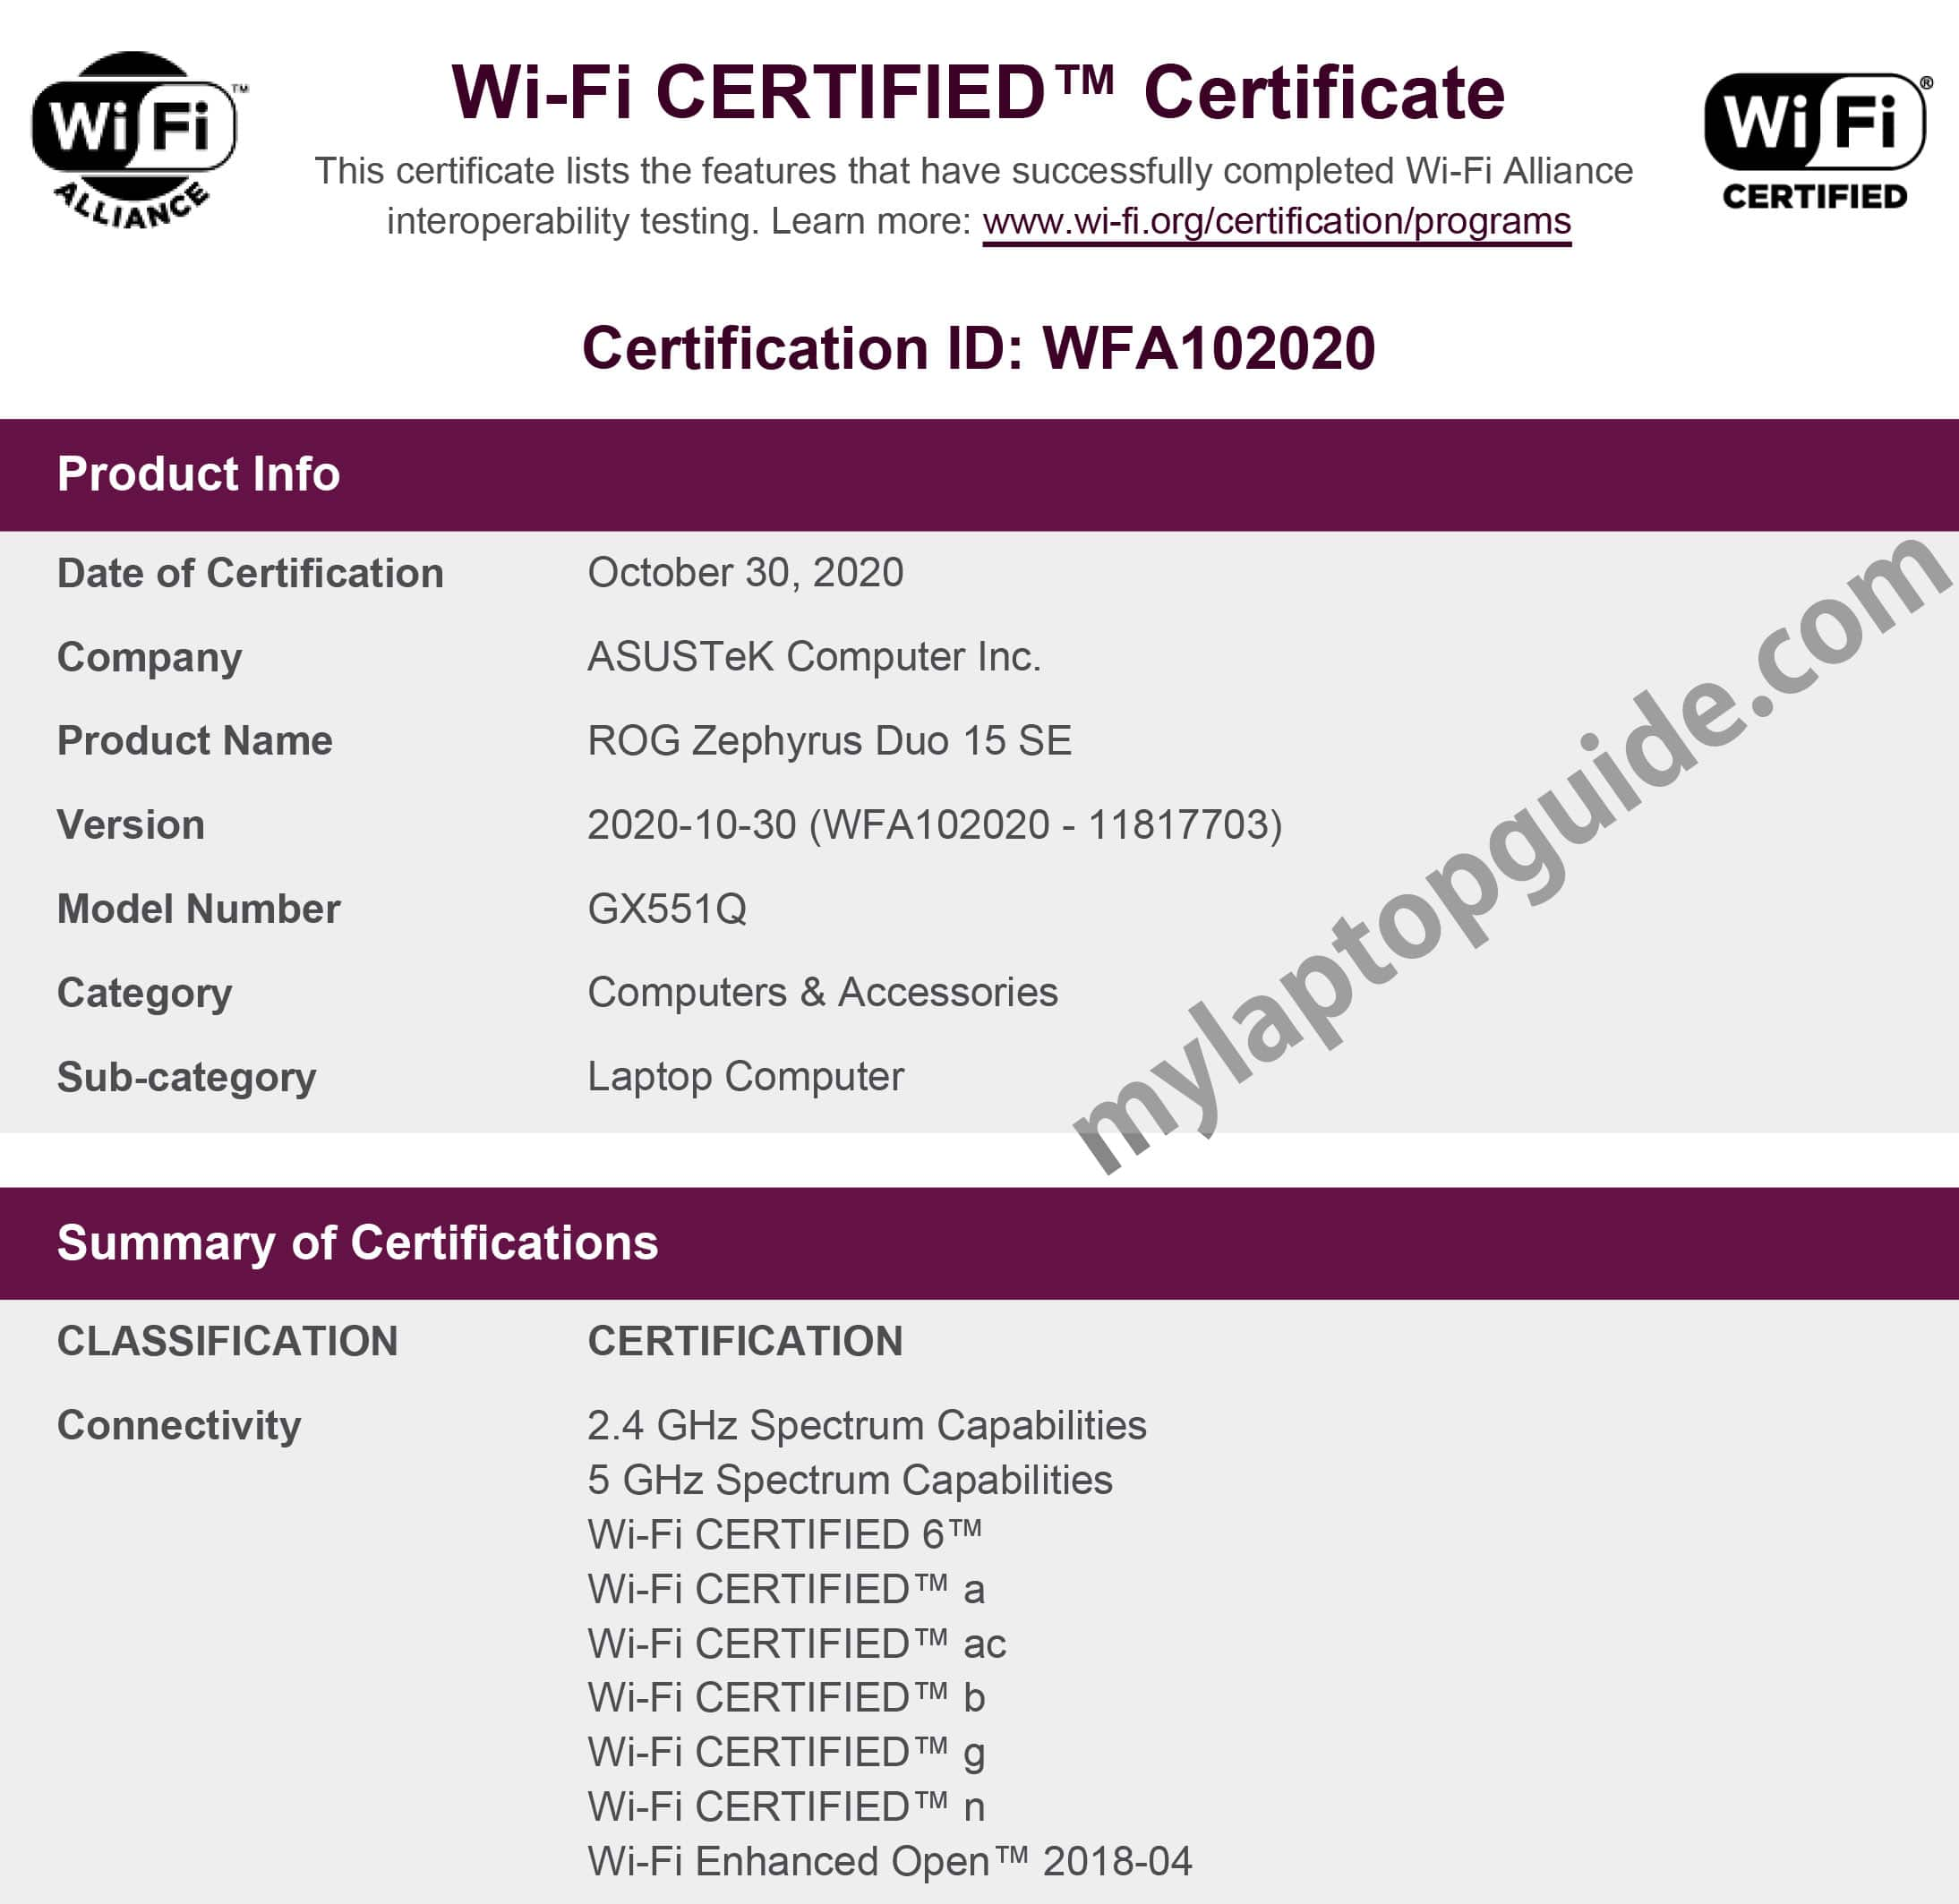 asus rog zephyrus duo 15 se gx551q wifi certification